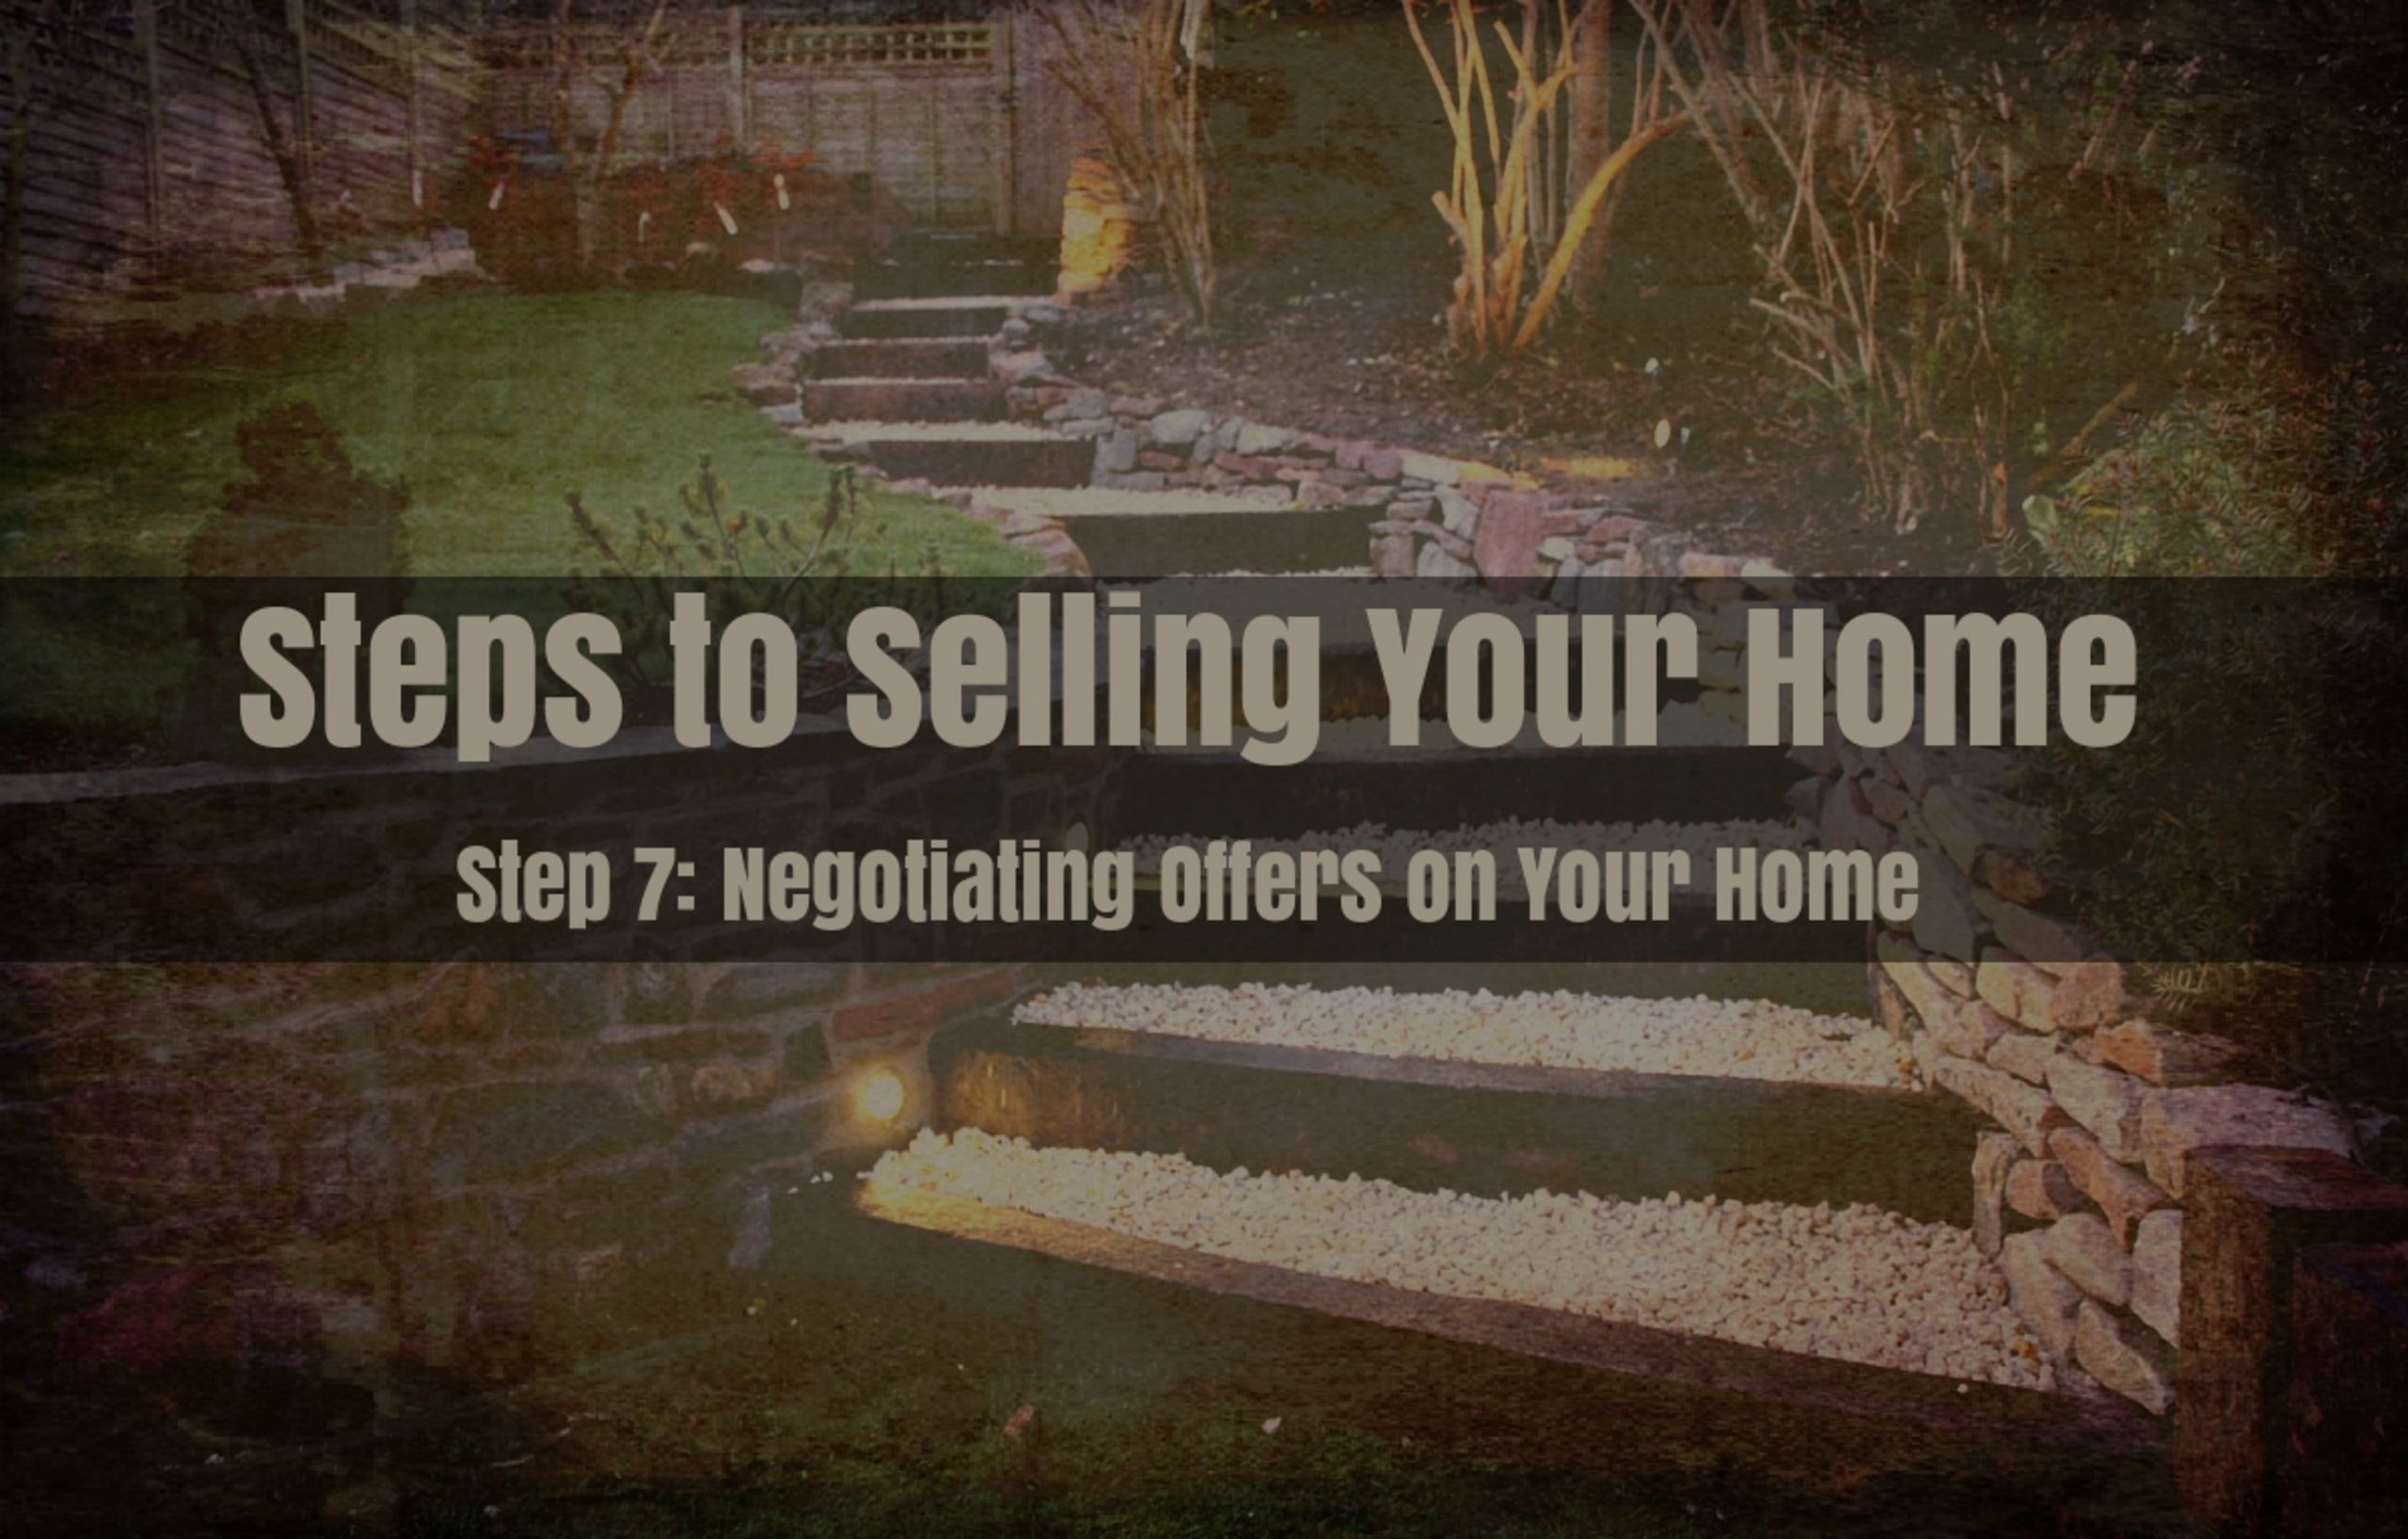 Step 7 – Negotiating Offers on Your Home